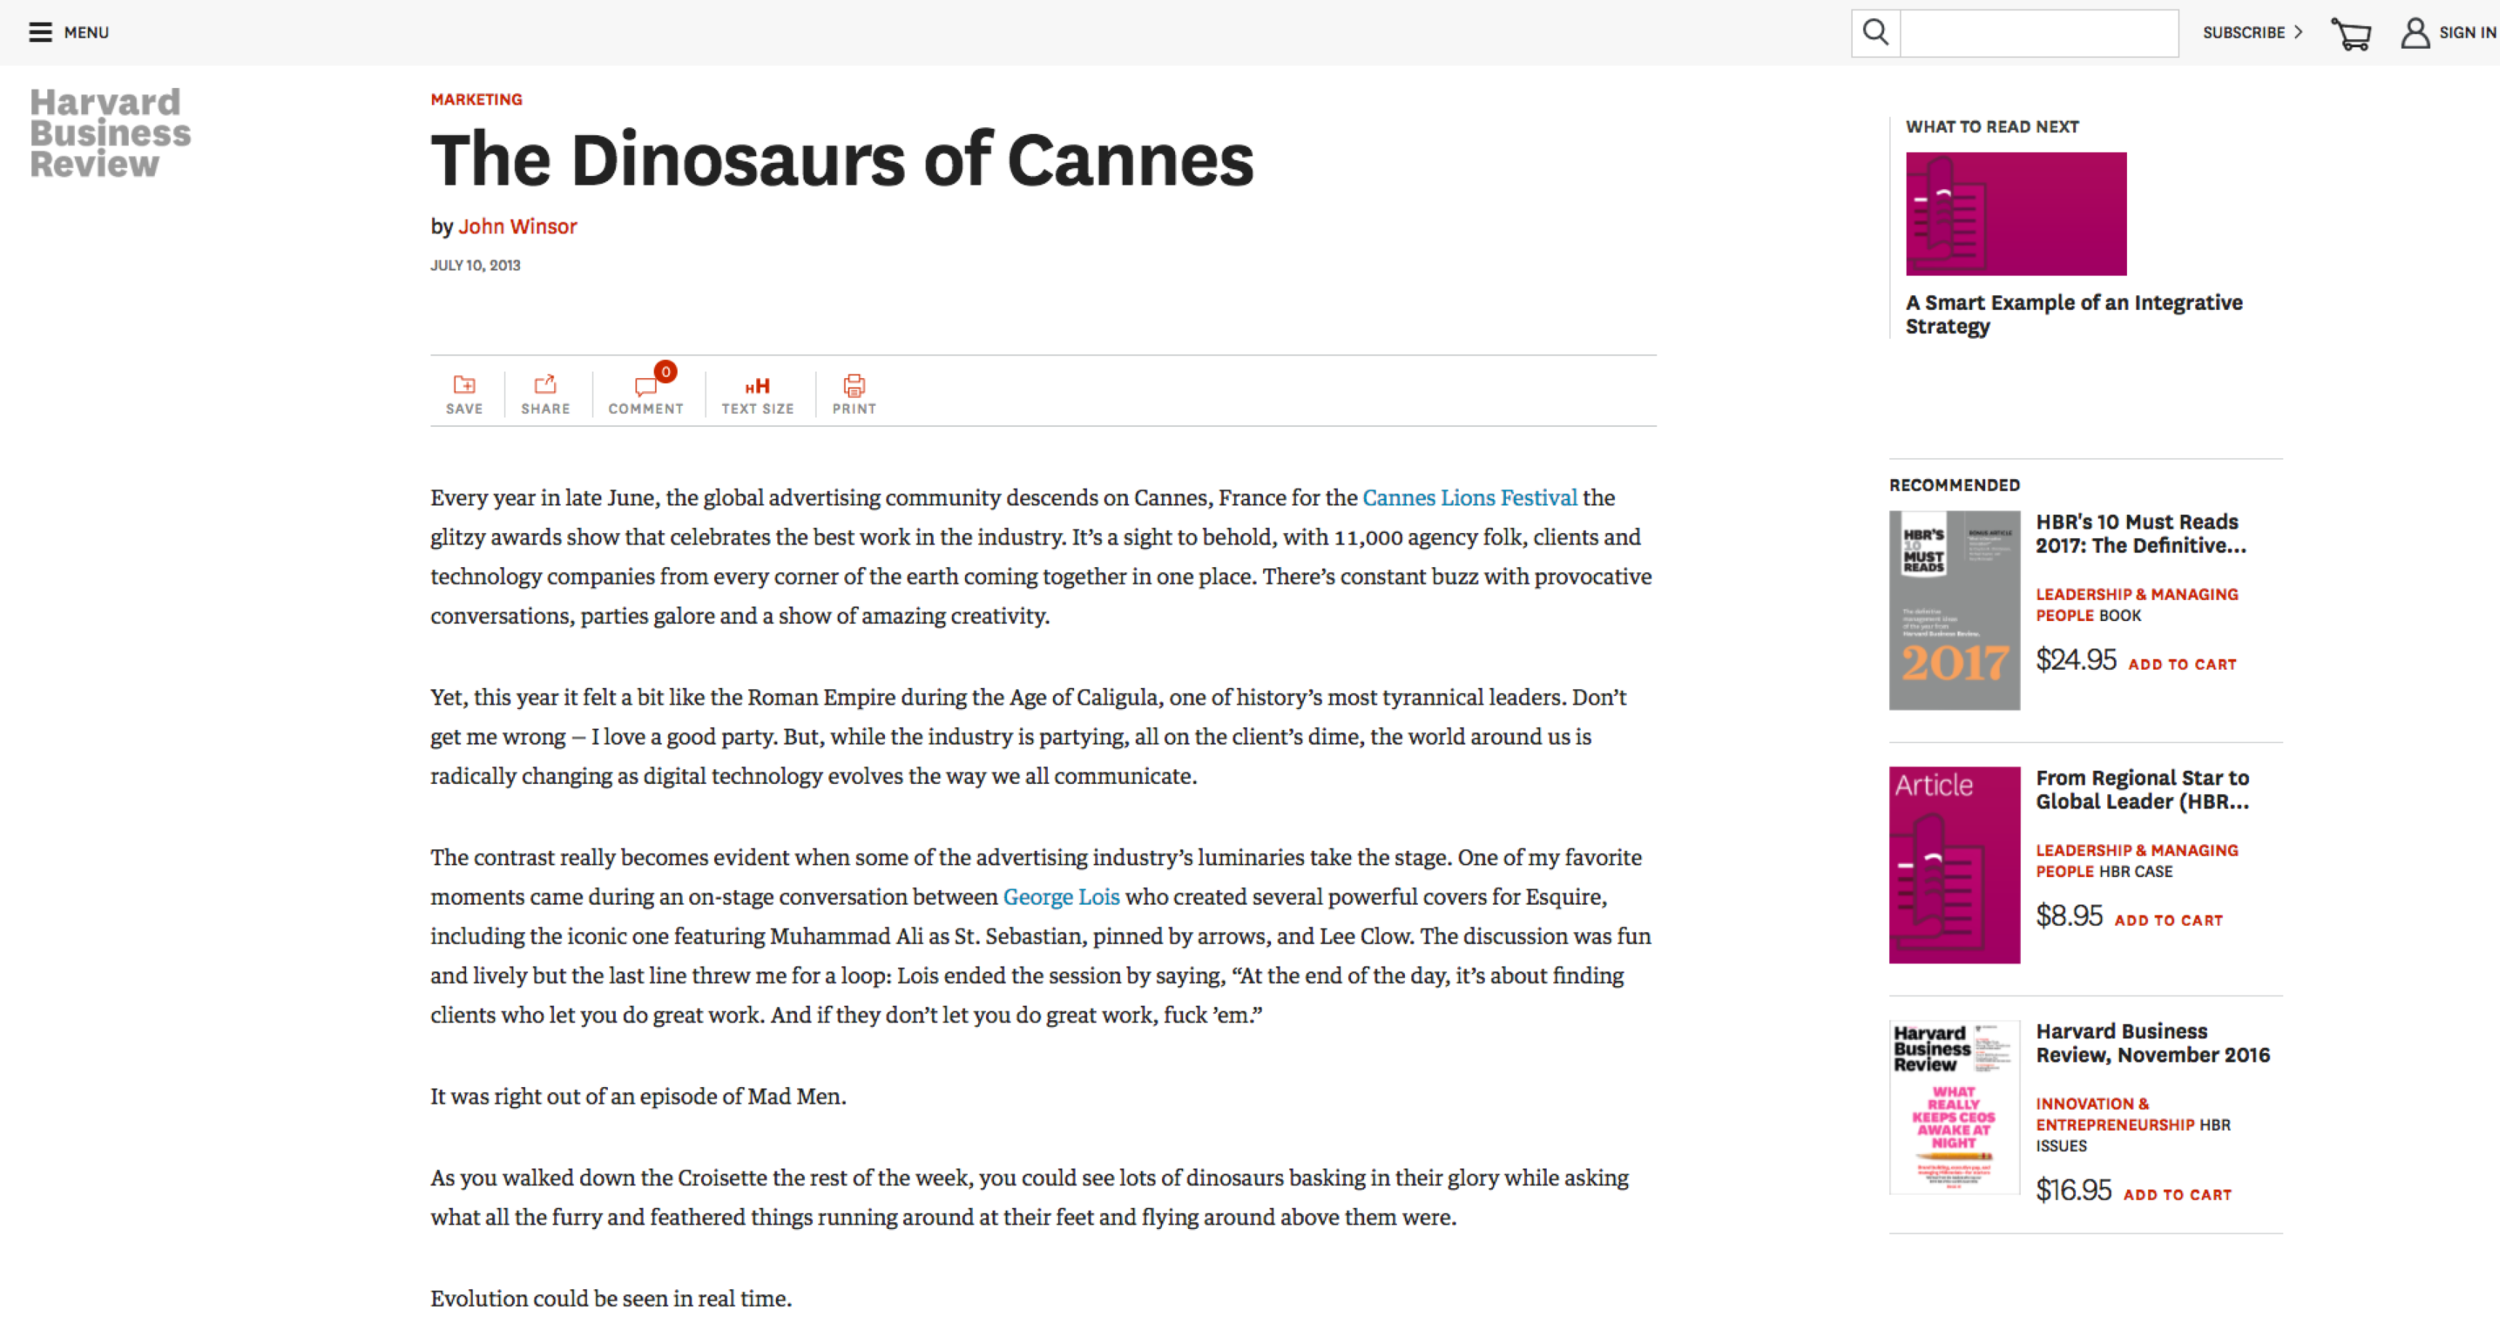 The Dinosaurs of Cannes